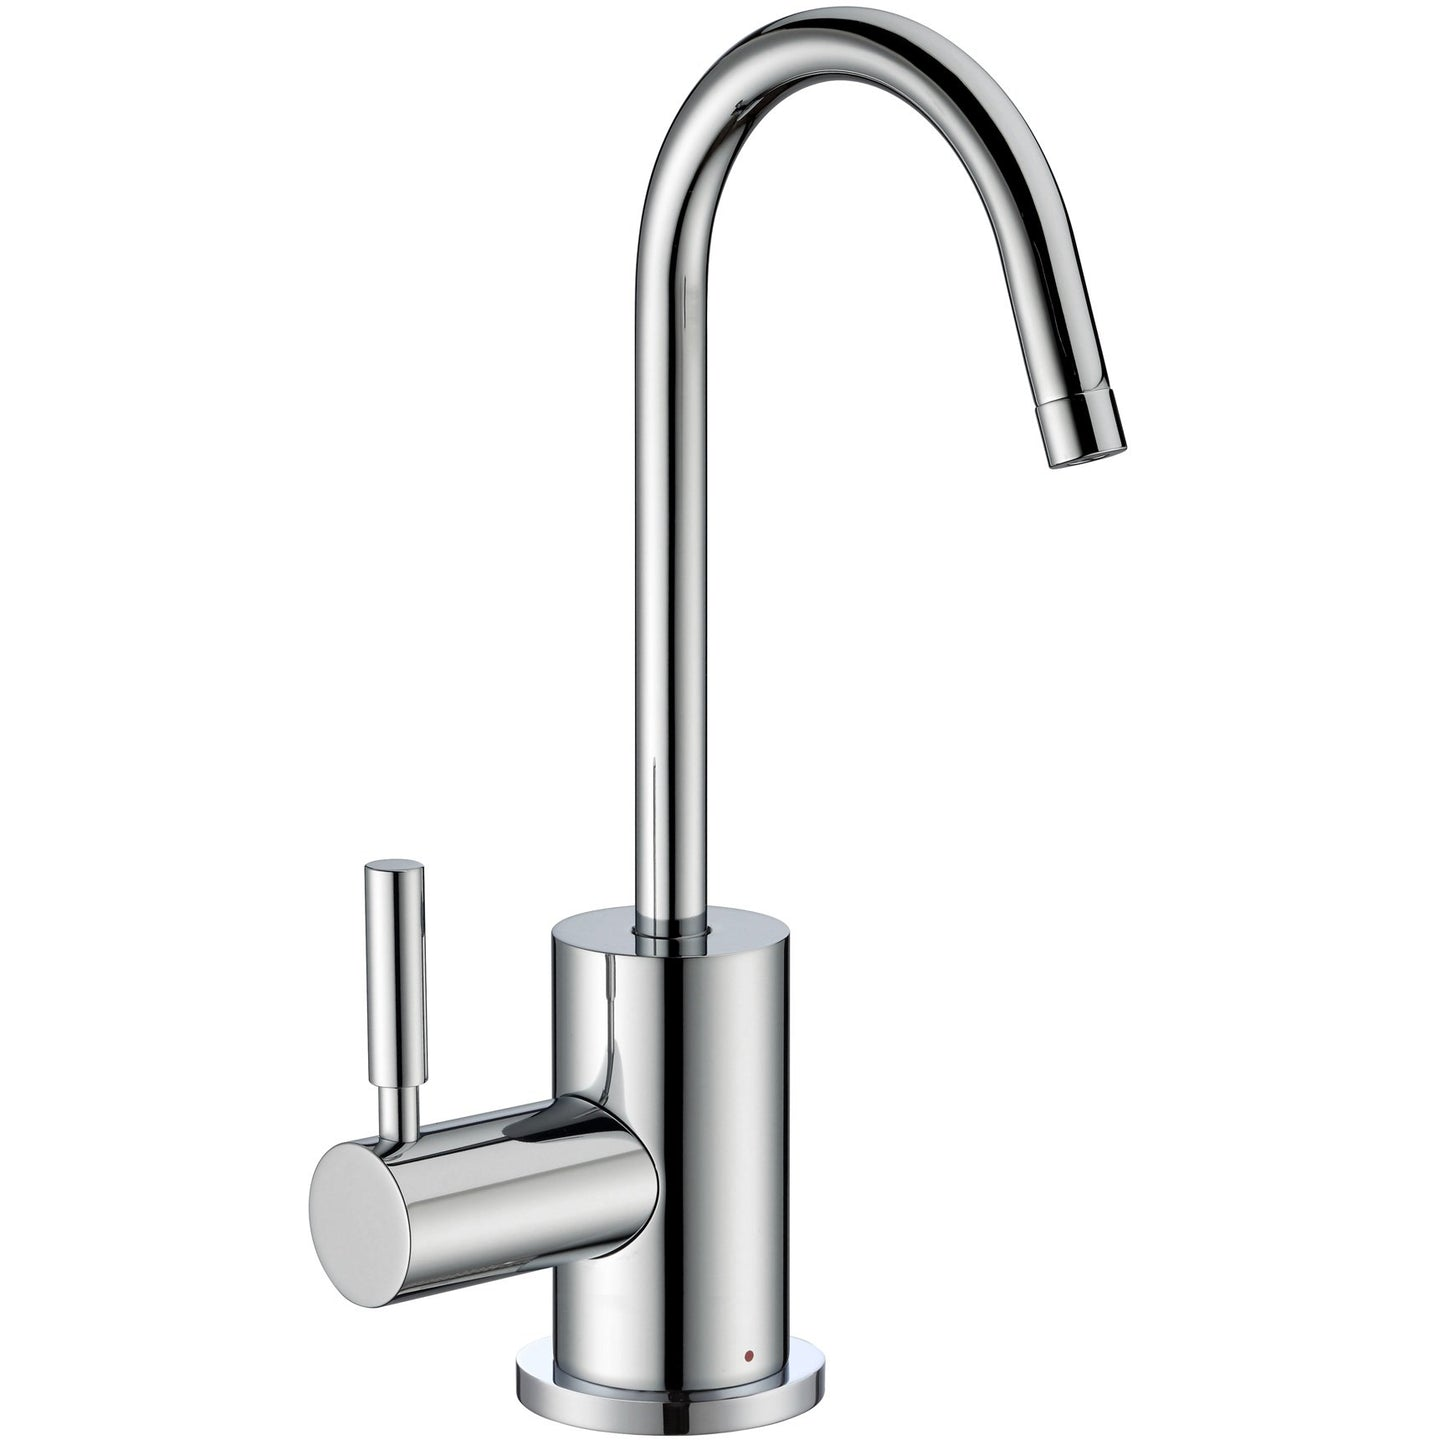 Whitehaus Point of Use Instant Hot Water Faucet with Contemporary Spout and Self Closing Handle